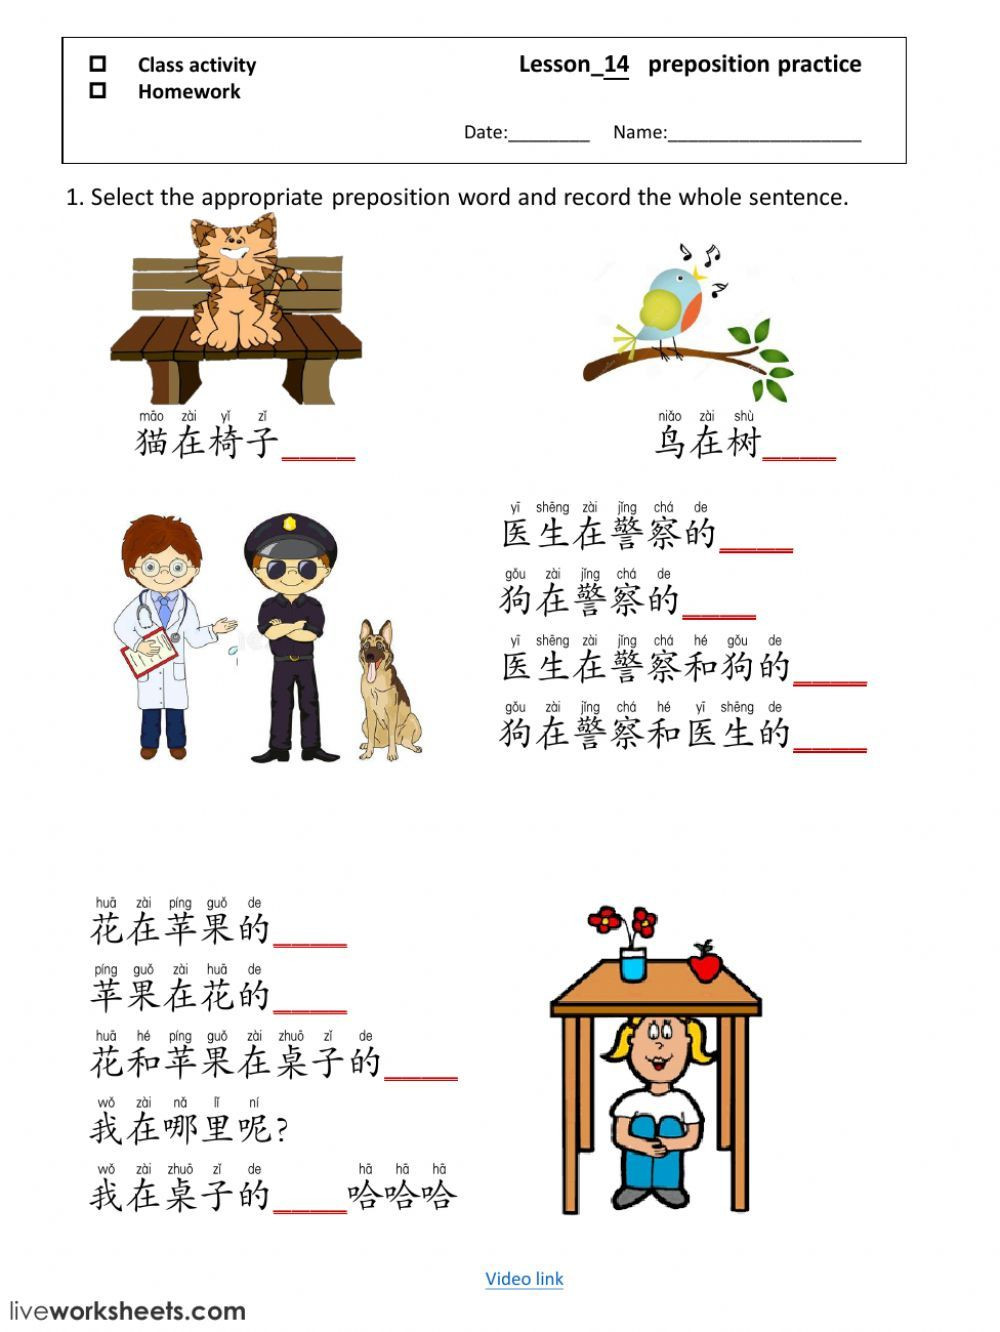 Prepositions Worksheets Middle School Prepositions Interactive and Able Worksheet You Can